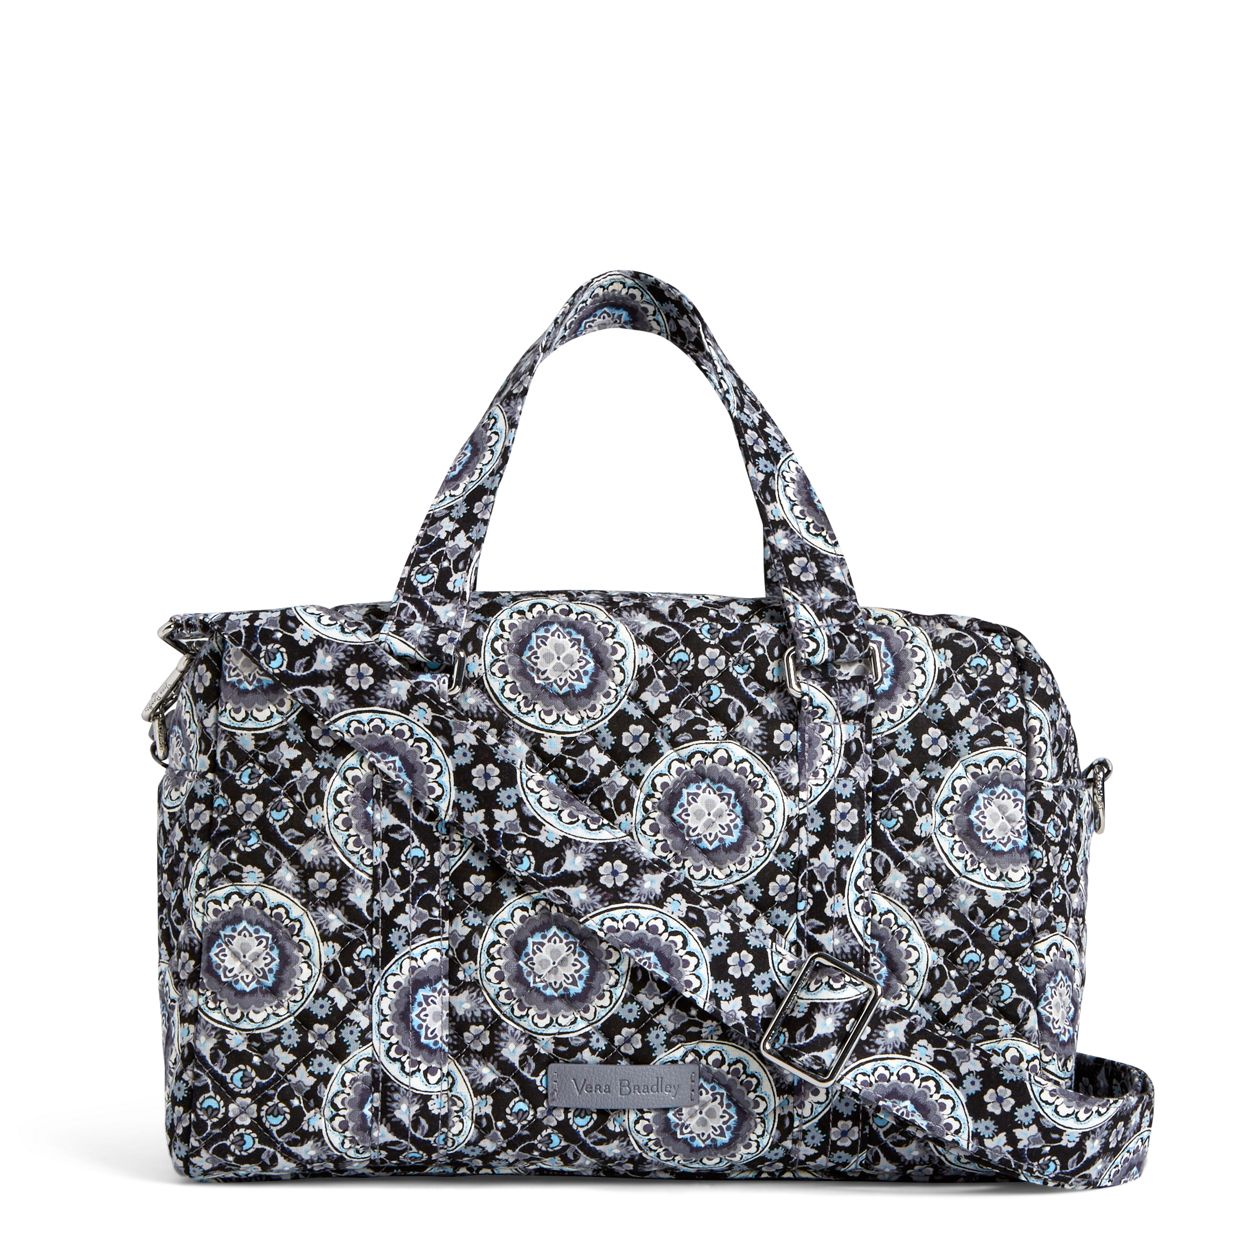 Image of Iconic 100 Handbag in Charcoal Medallion acec9d3a11ce9